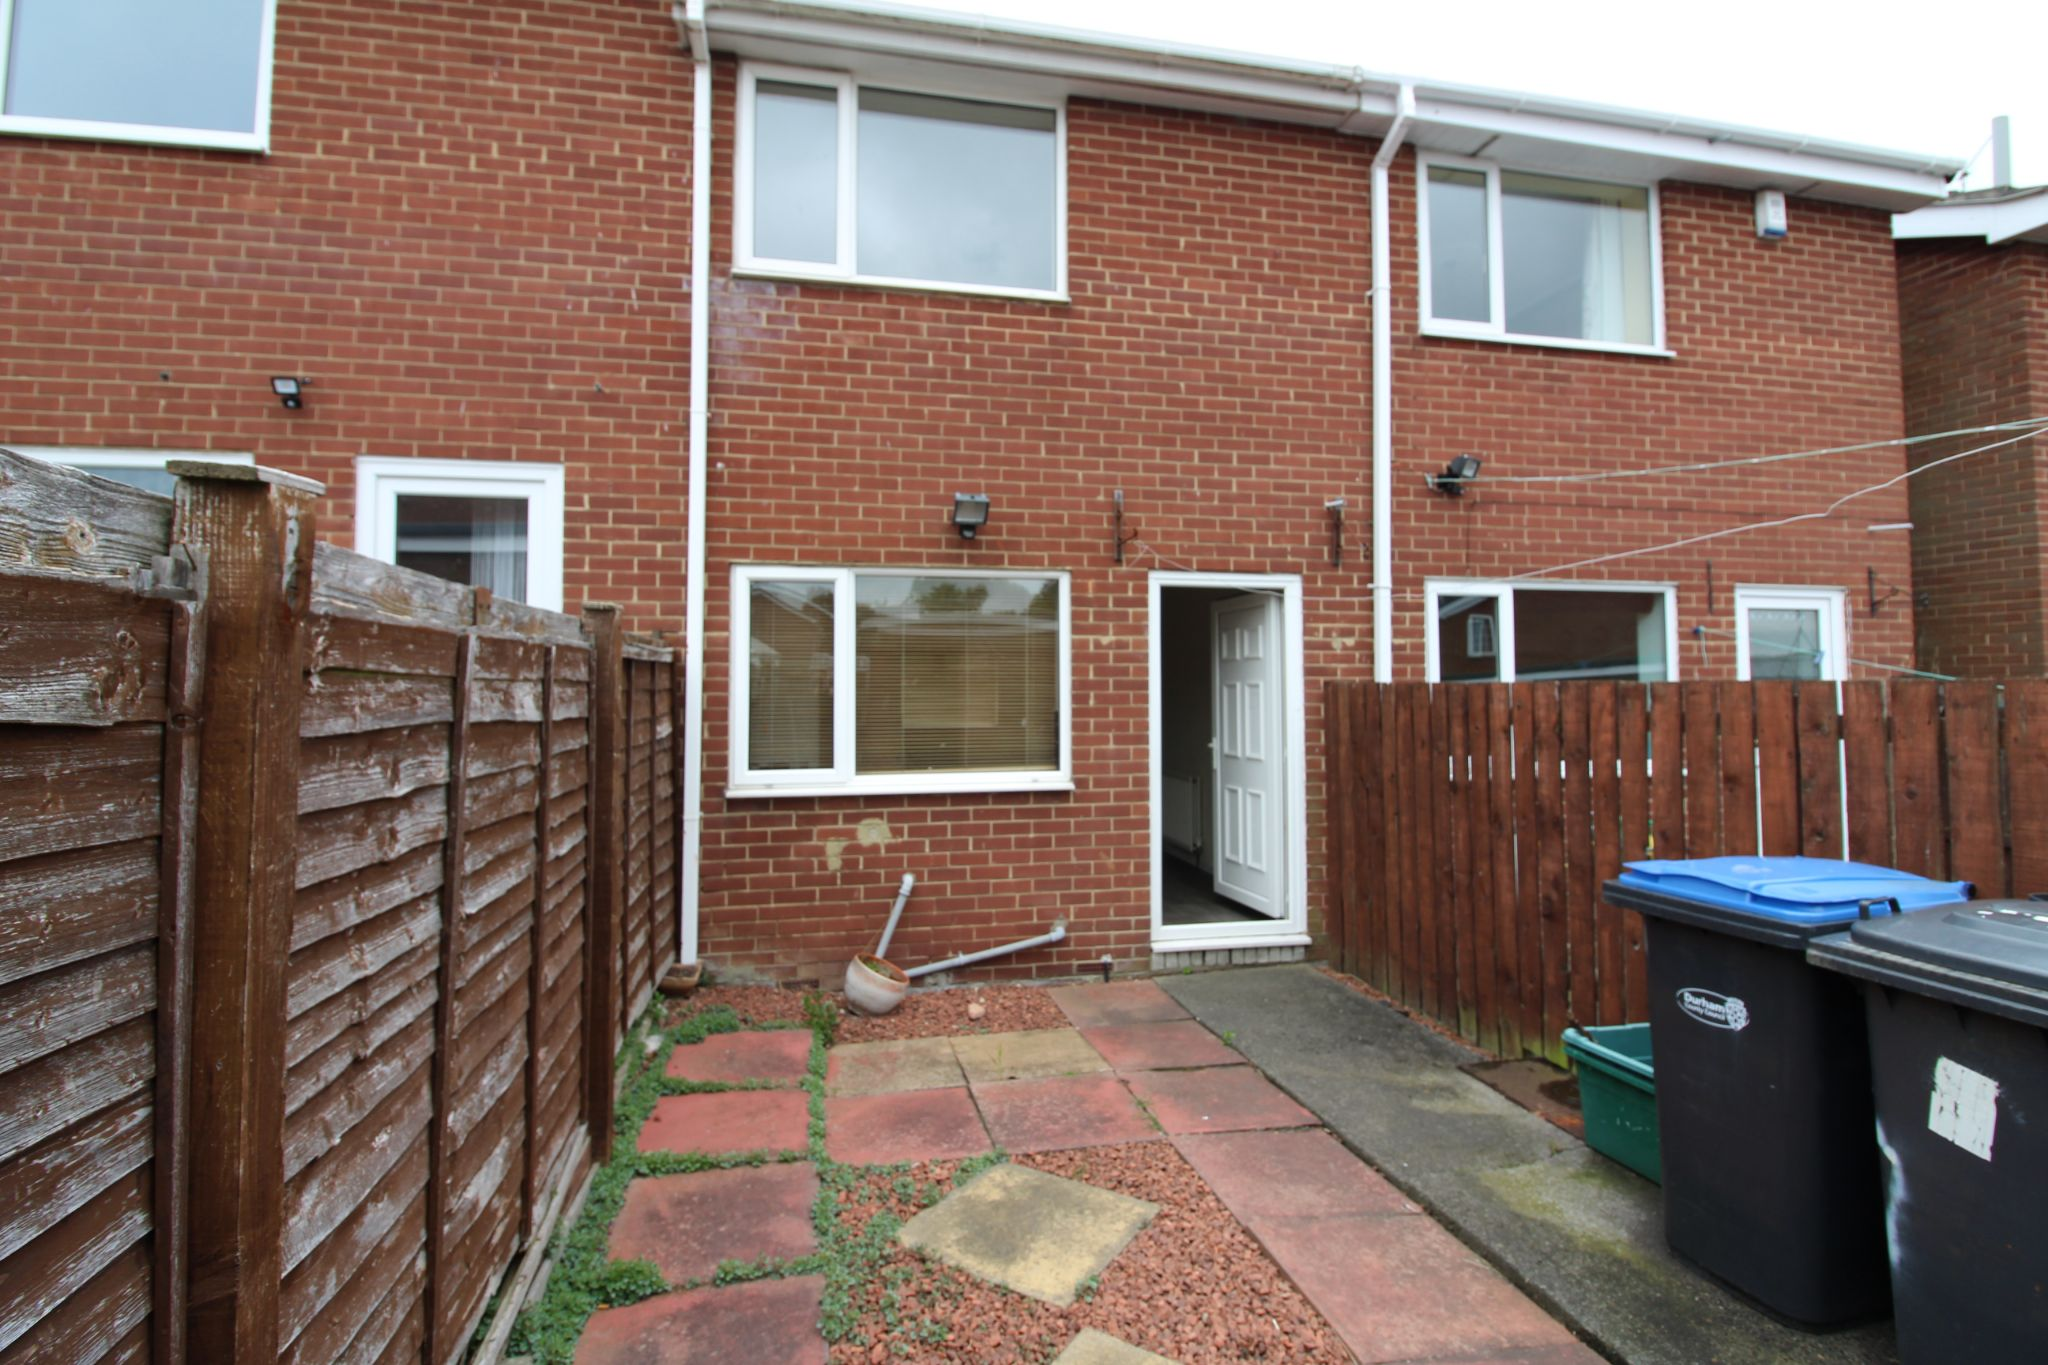 2 bedroom mid terraced house For Sale in Durham - Photograph 15.